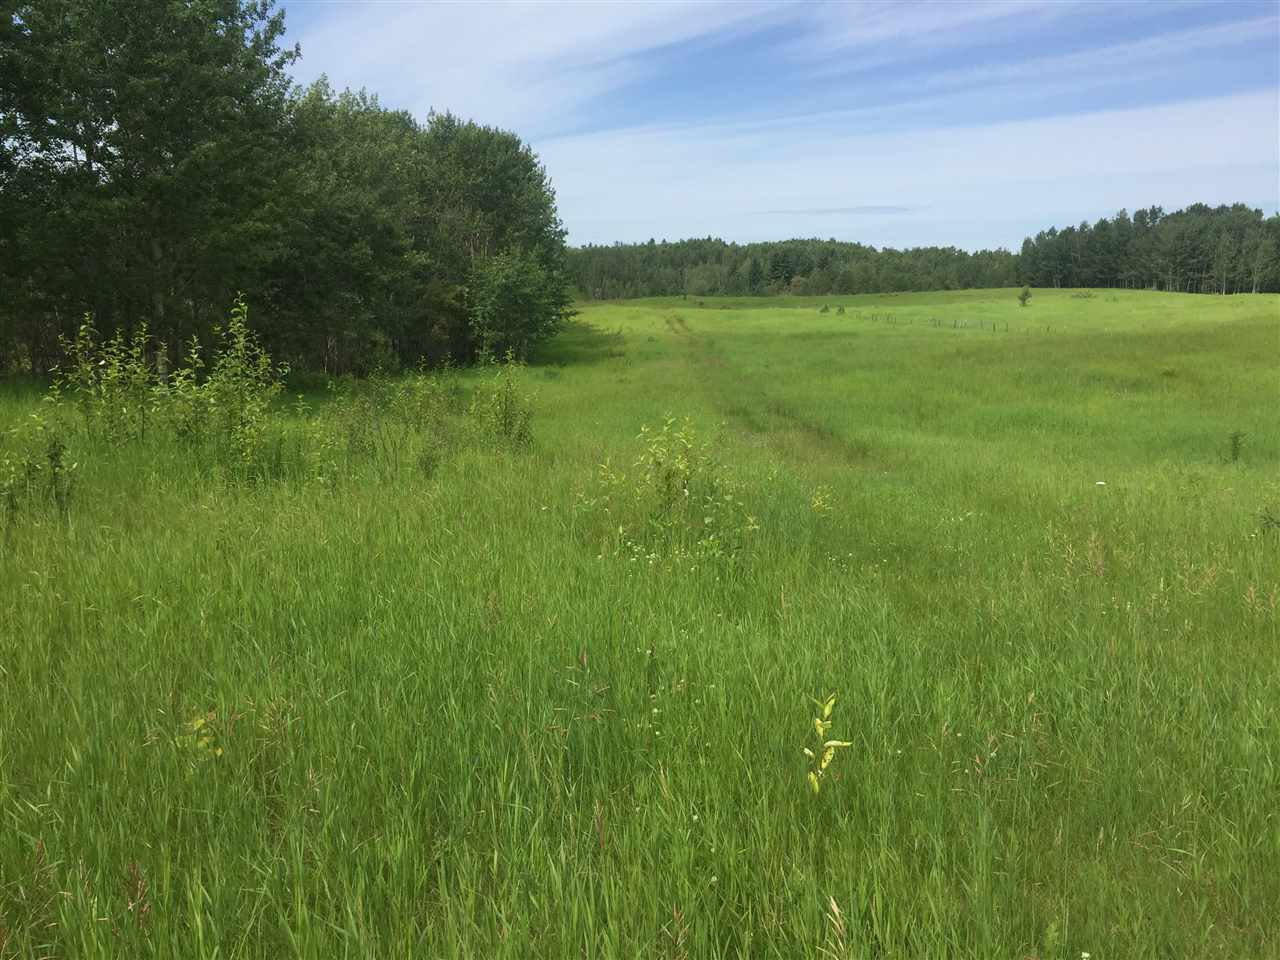 Main Photo: TWP RD 550 & RGE RD 203: Rural Strathcona County Rural Land/Vacant Lot for sale : MLS®# E4166392